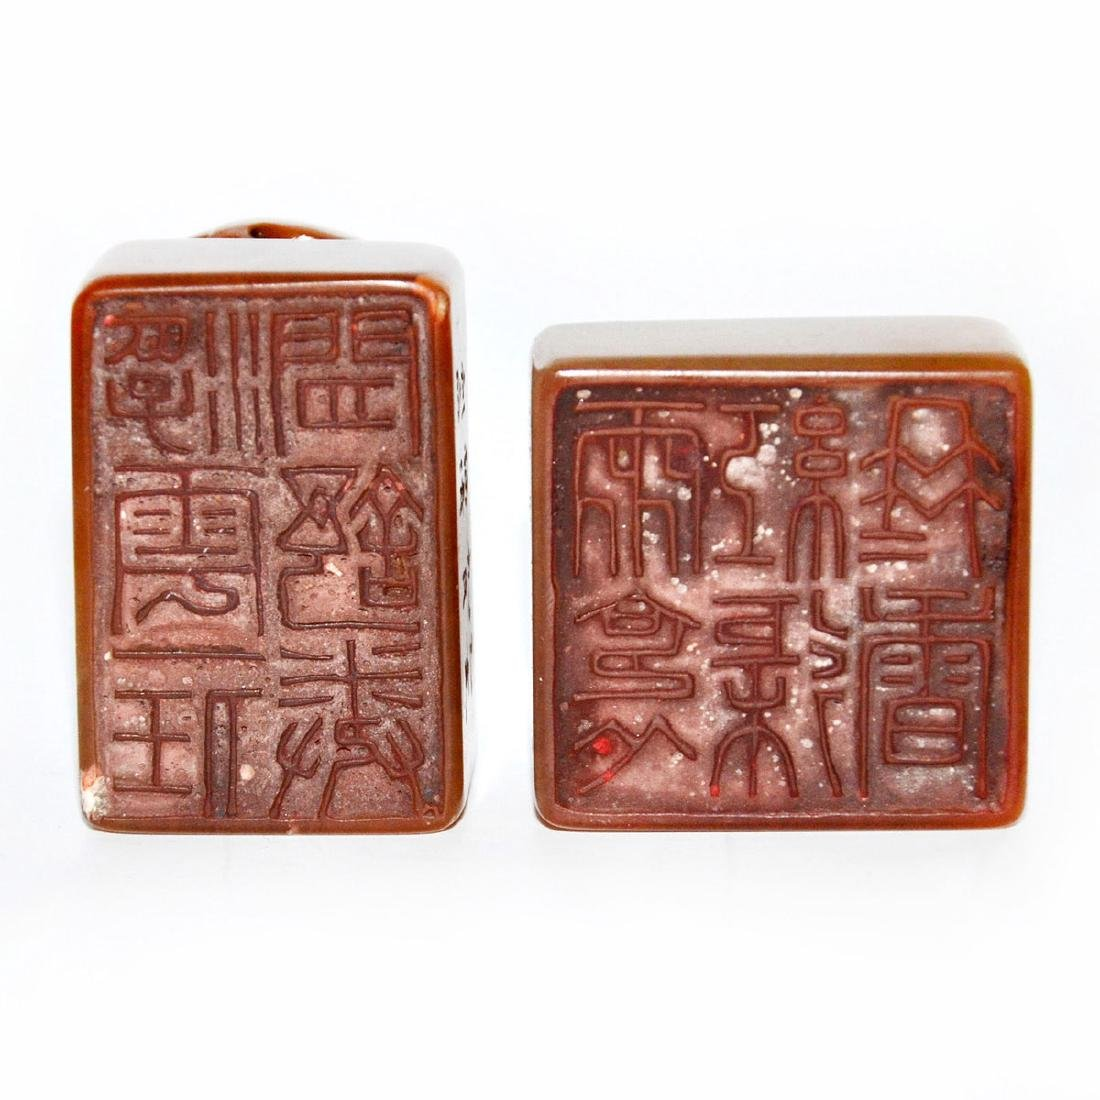 Qing Dynasty, A Pair of Tianhuang Stone Seal with - 5